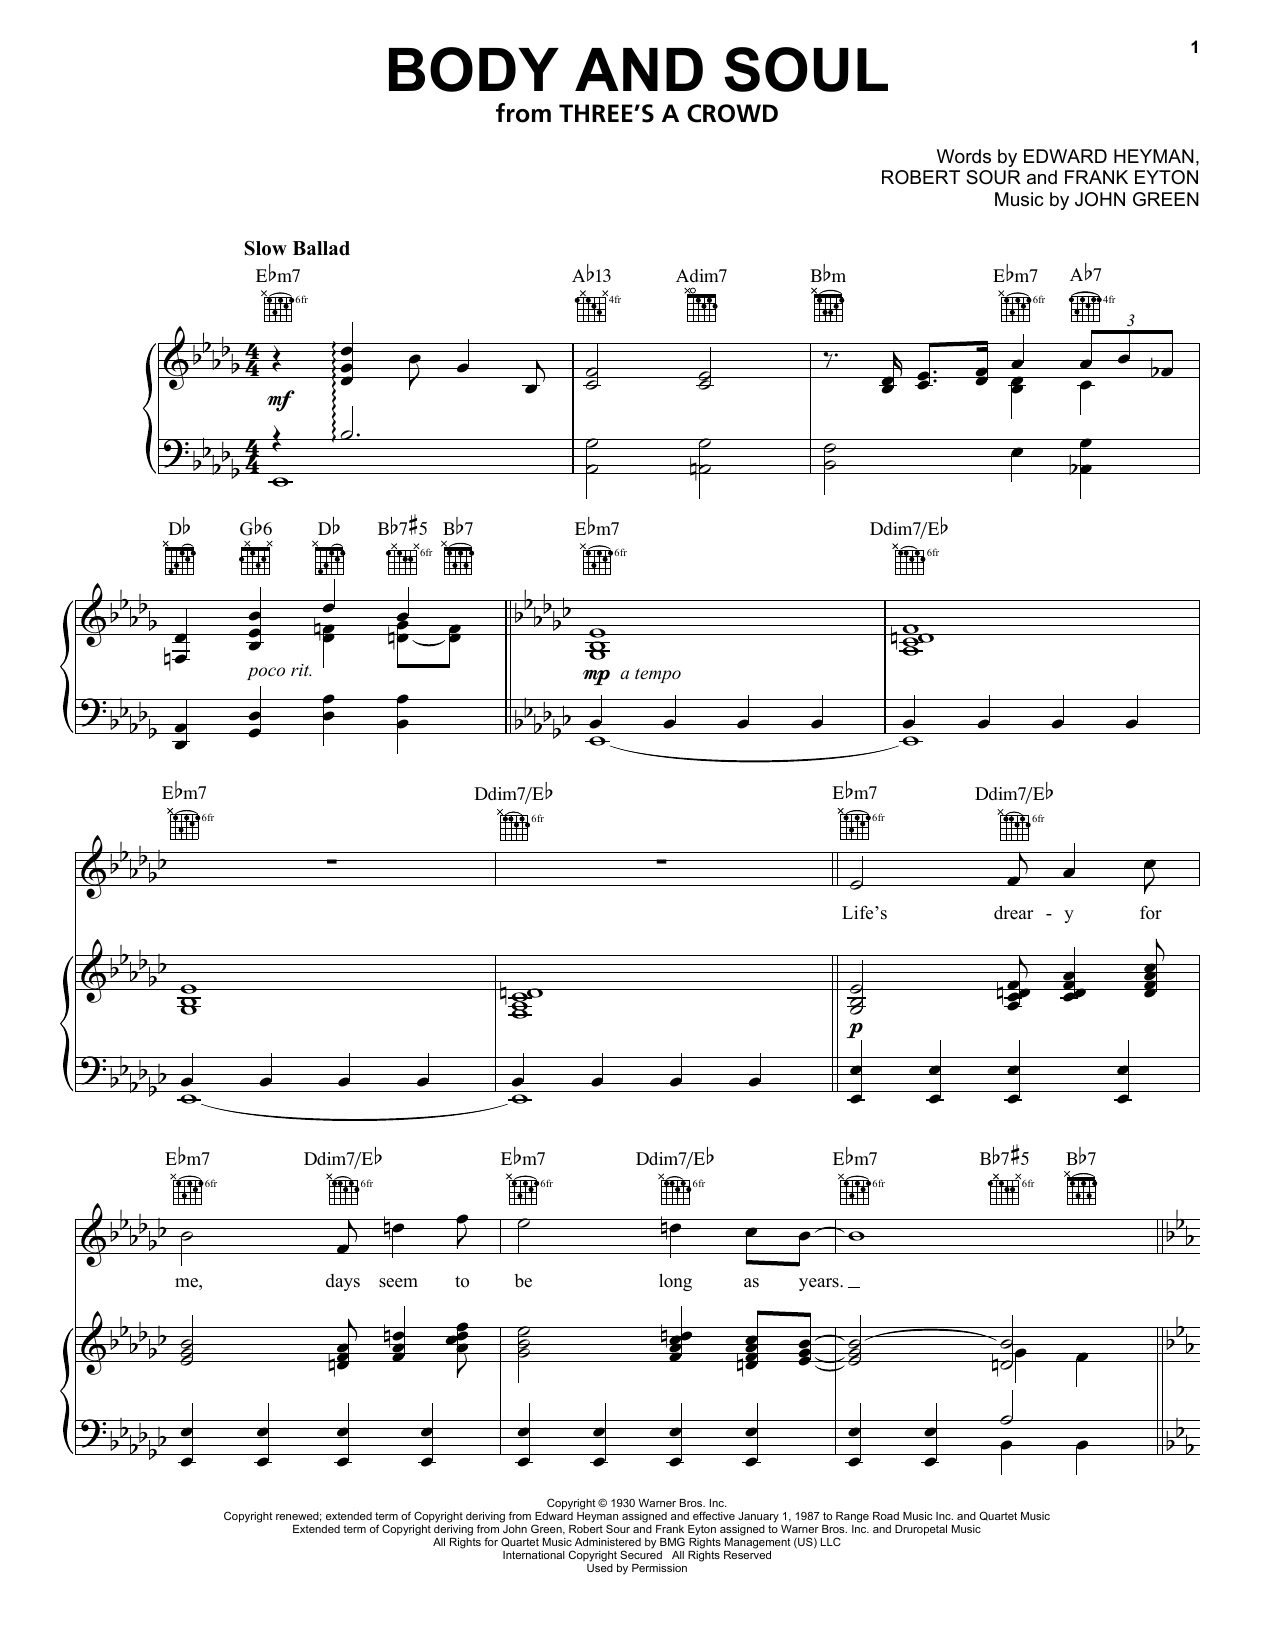 Frank Sinatra Body And Soul sheet music notes and chords